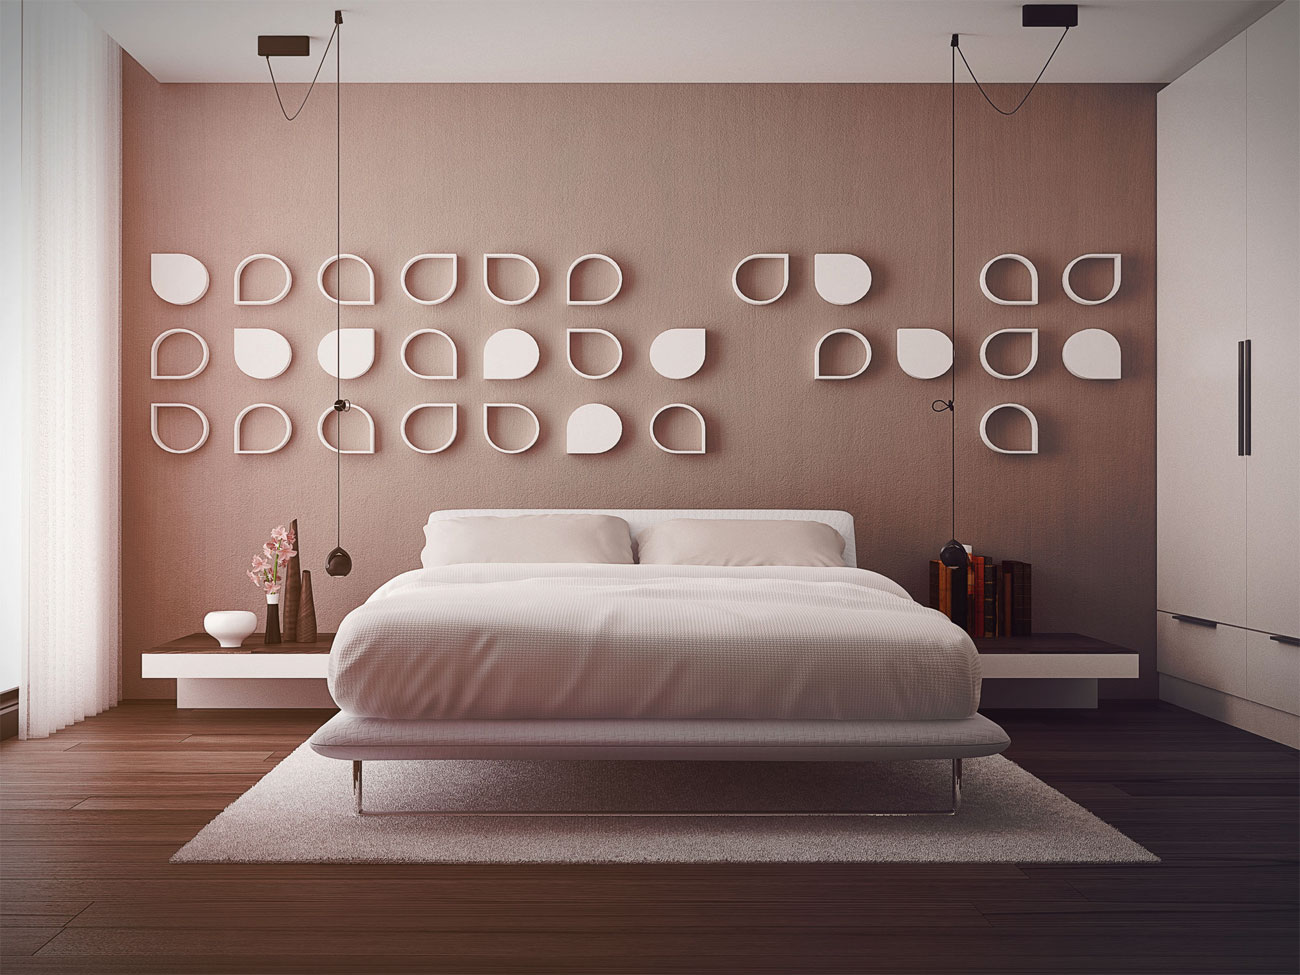 Smart and sassy bedrooms - Wall hangings for bedroom ...